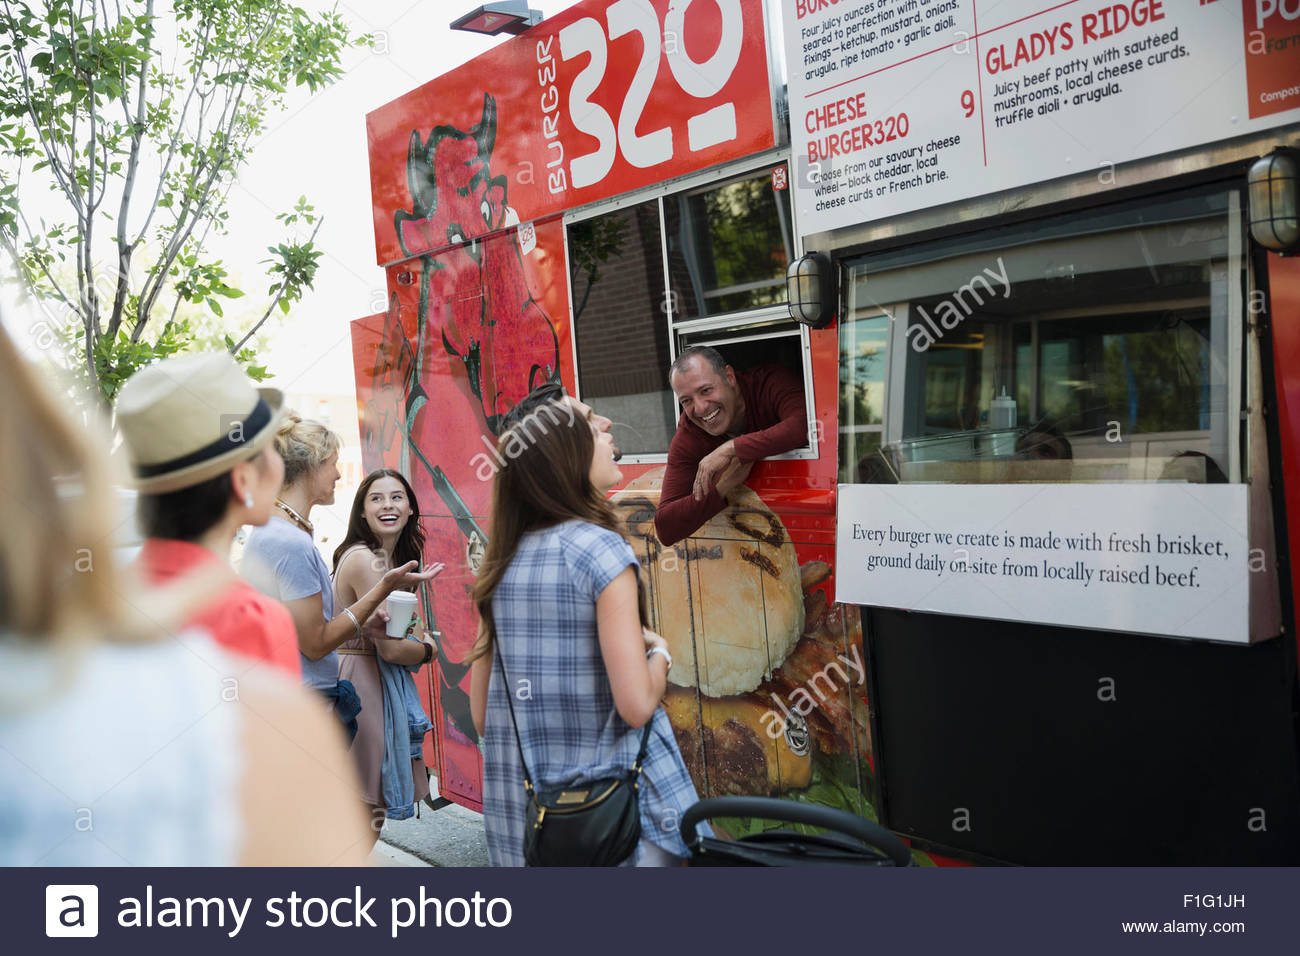 Customers ordering at food truck - Stock Image